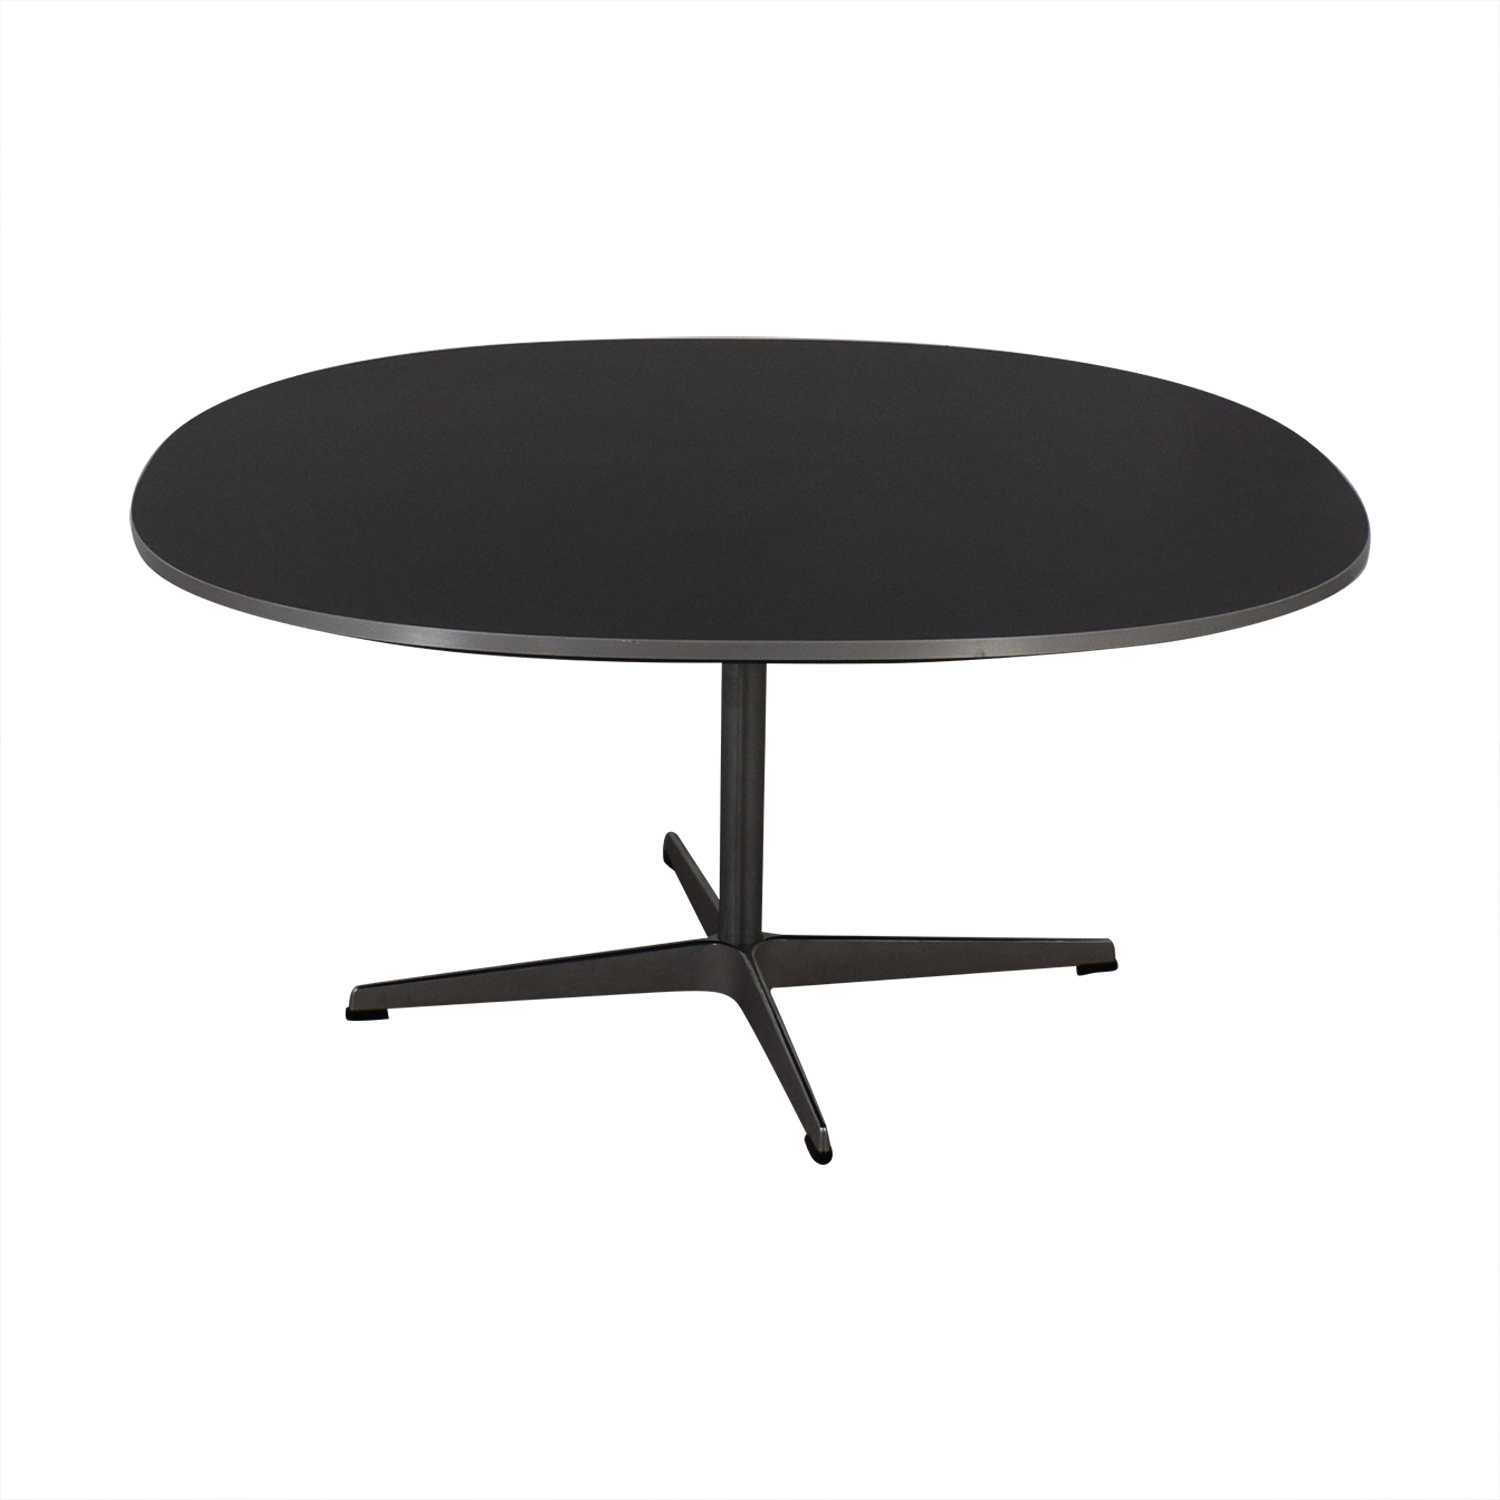 Fritz Hansen Fritz Hansen Piet Hein Superellipse Coffee Table on sale